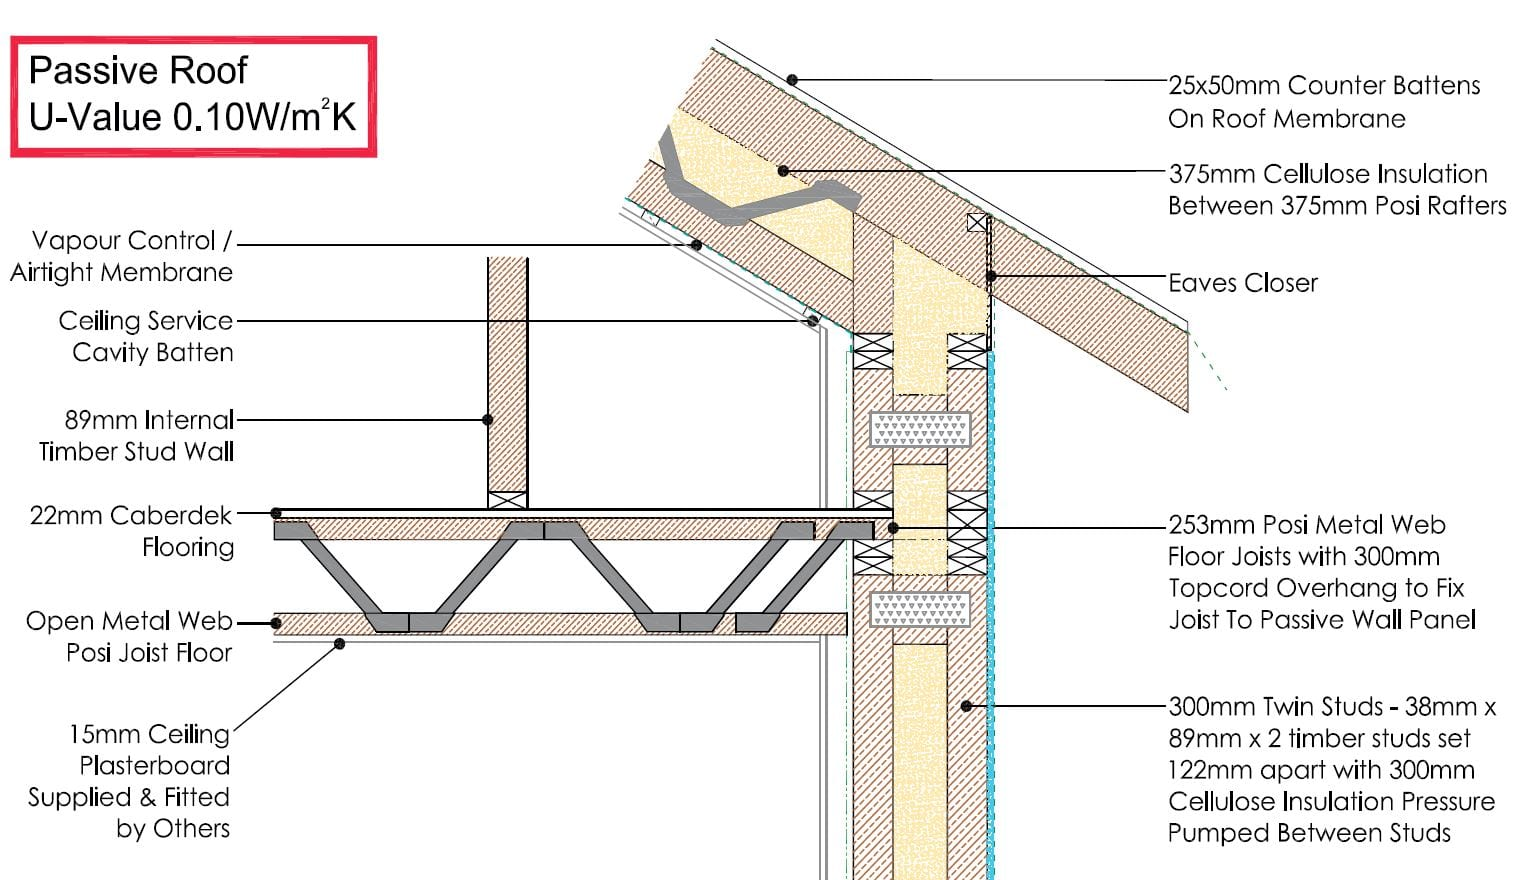 Passive Roof - MBC Timber Frame